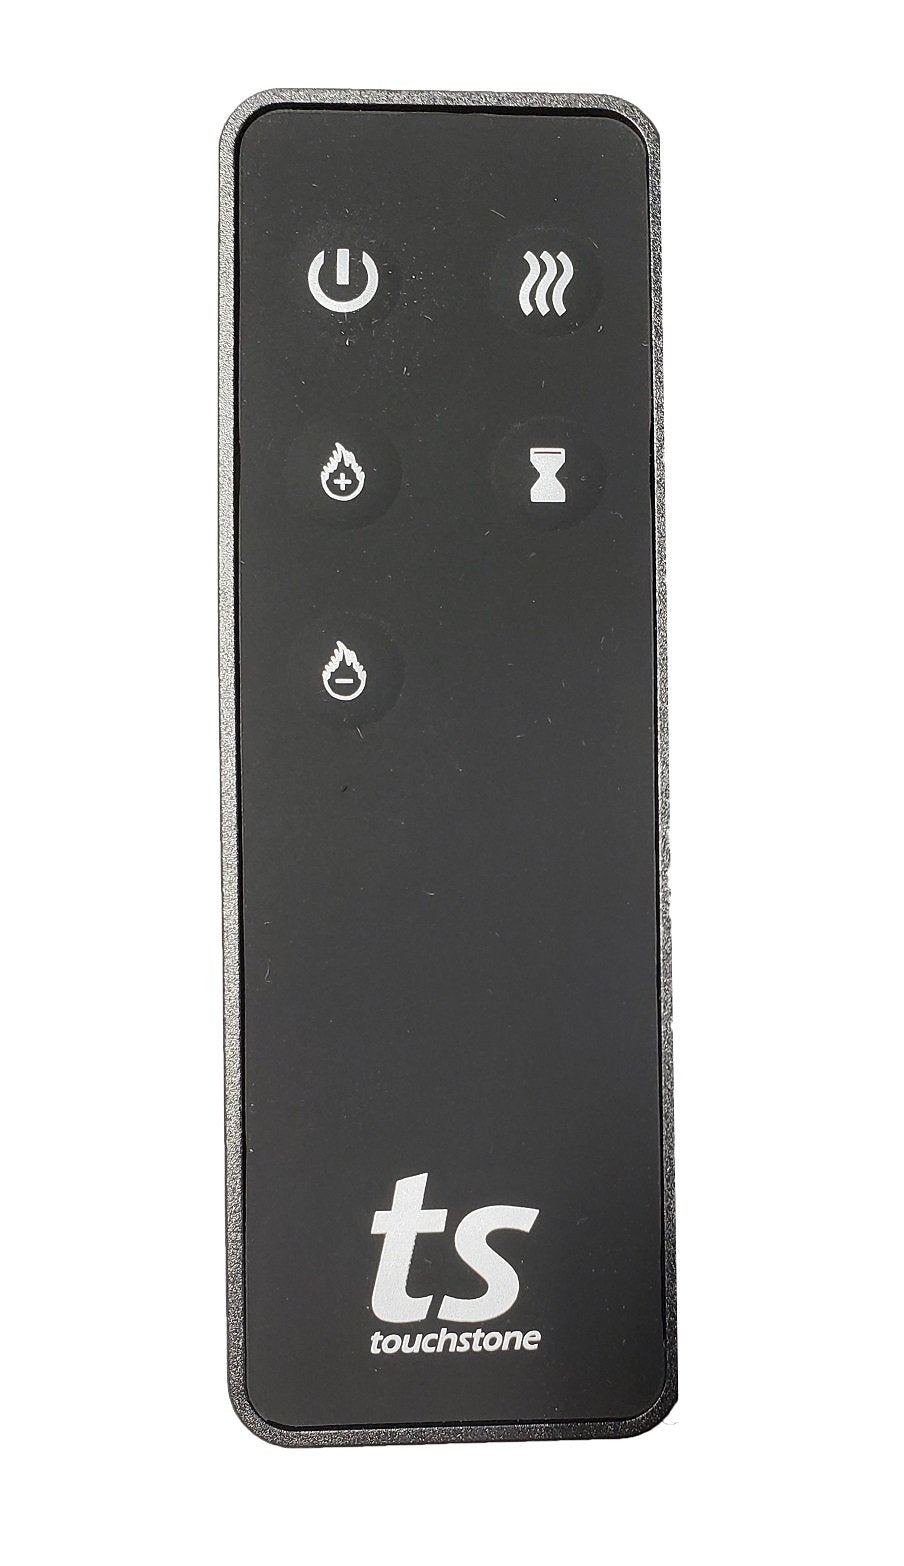 Touchstone Fireplace Replacement Remote Touchstone Home Products Inc